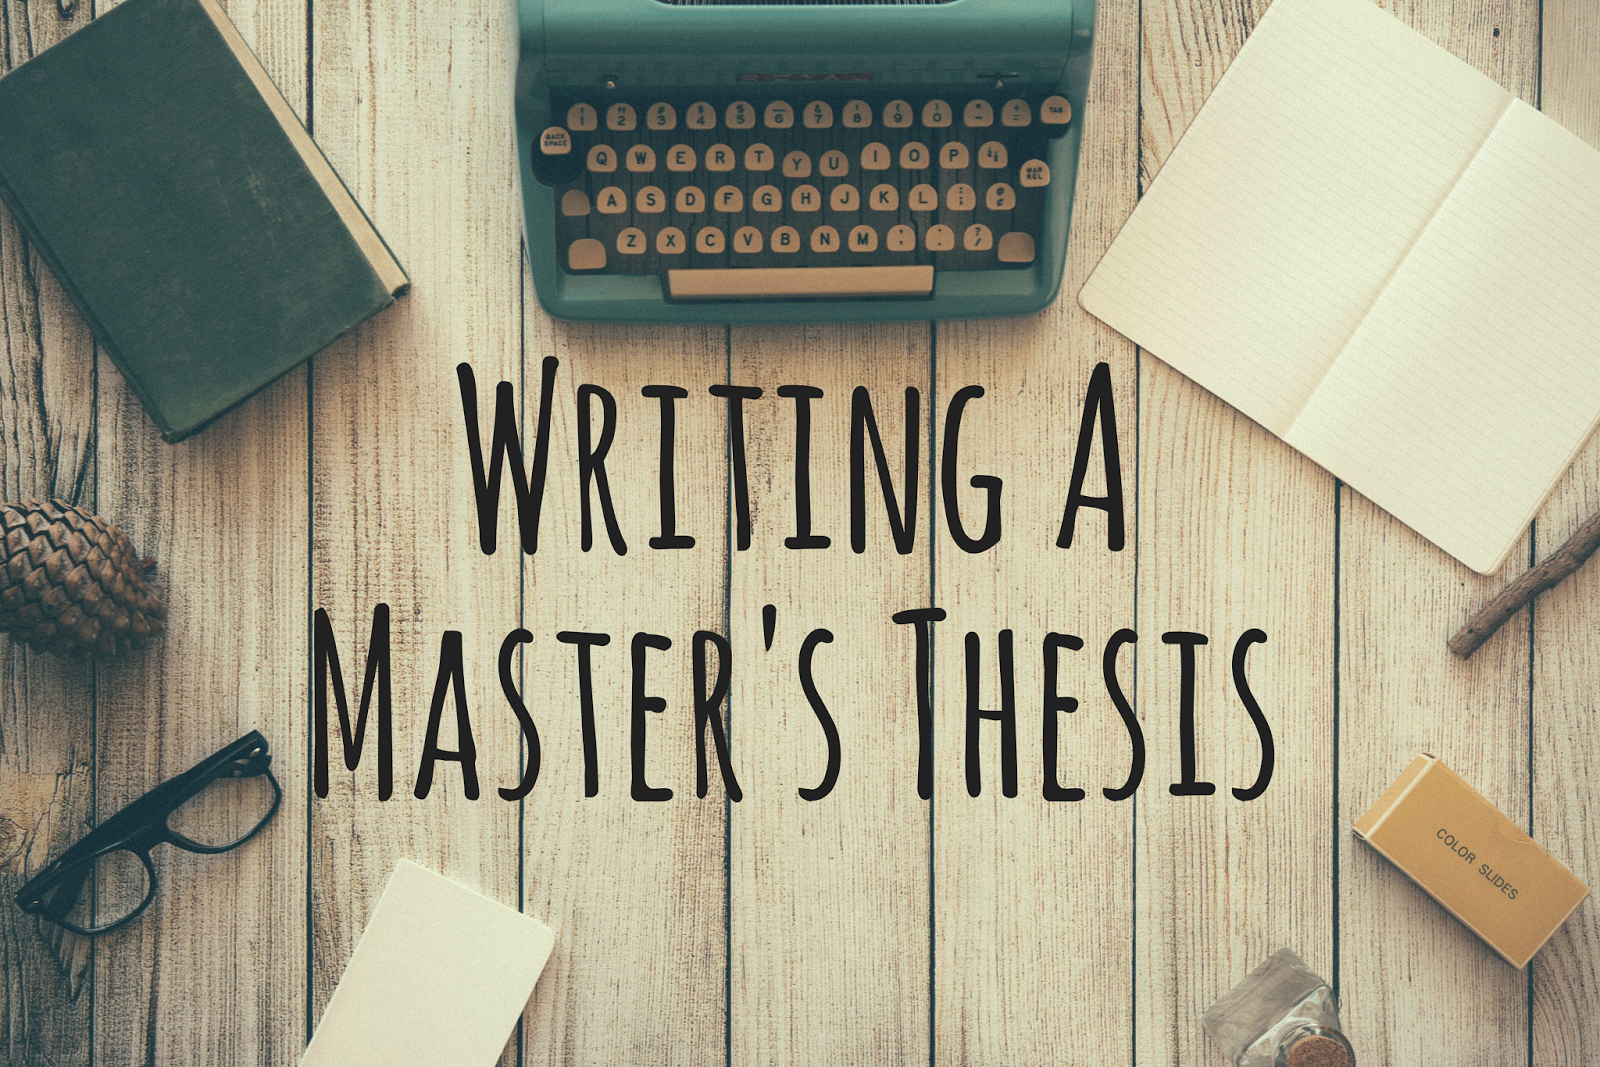 master thesis be Guidelines for writing a thesis or dissertation  contents: guidelines for writing a thesis or dissertation, linda childers hon, phd outline for empirical master's theses, kurt kent, phd.